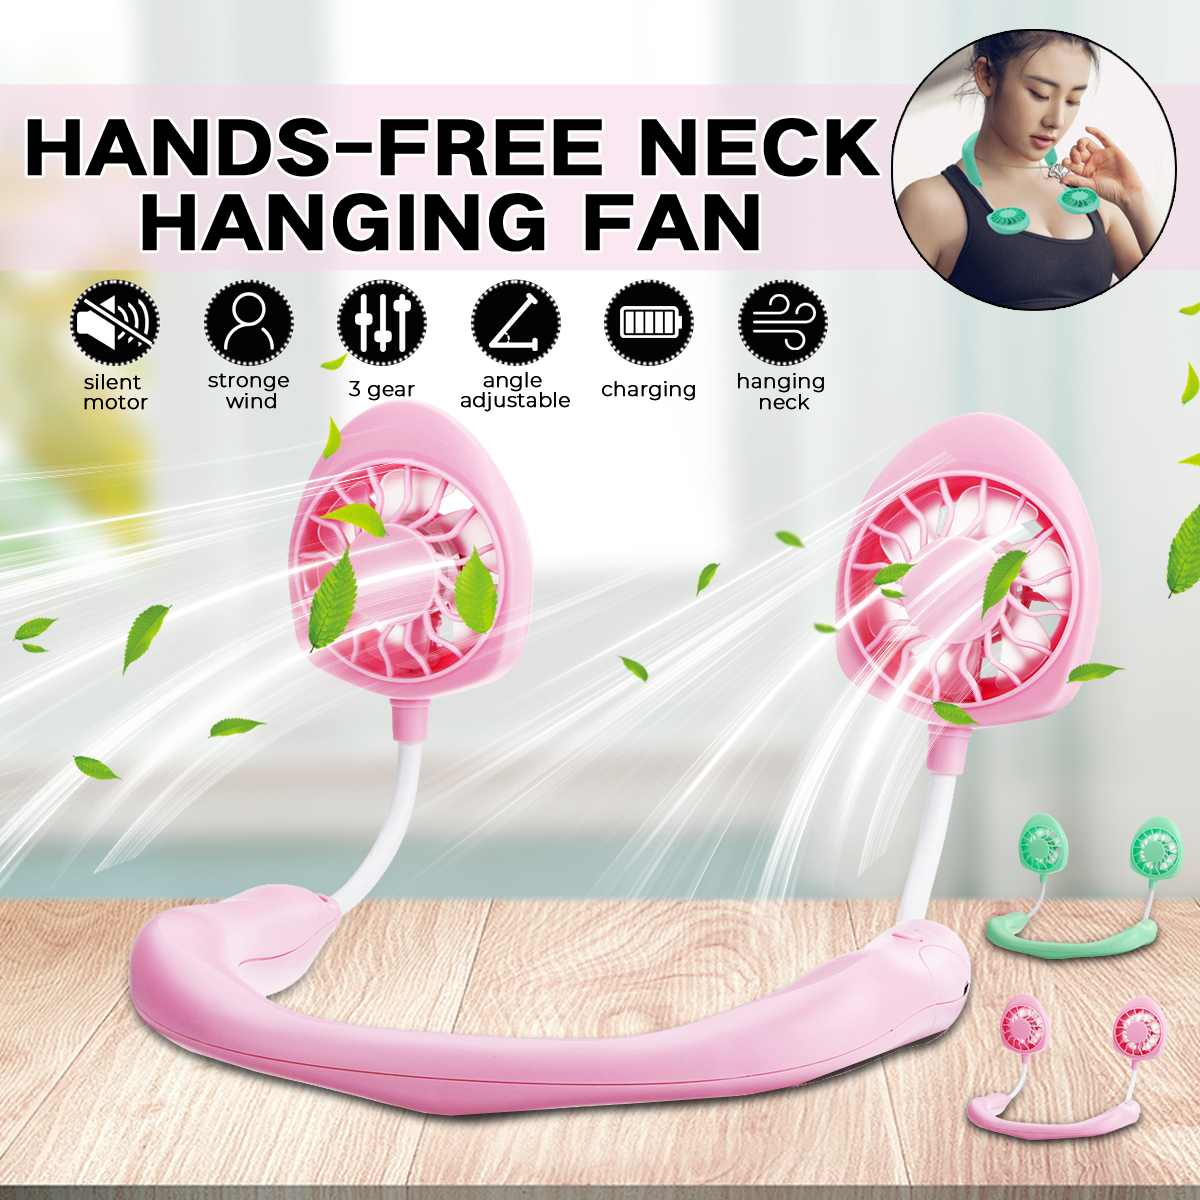 Portable Fans Hand Free Neckband Fans USB Rechargeable 1200mA Battery Operated Dual Wind Head 3 Speed Adjustable Fan